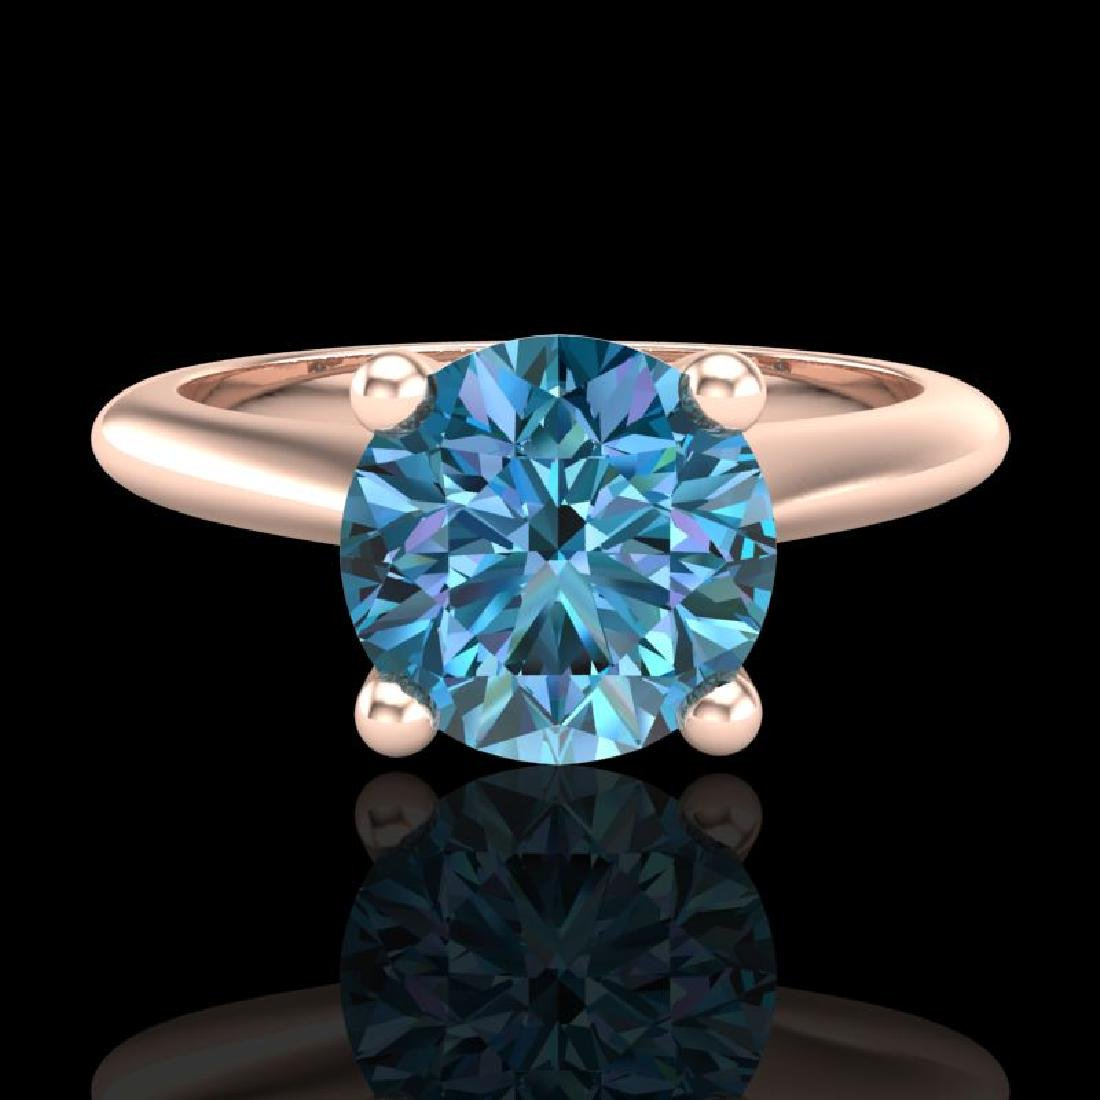 1.6 CTW Intense Blue Diamond Solitaire Engagement Art - 2